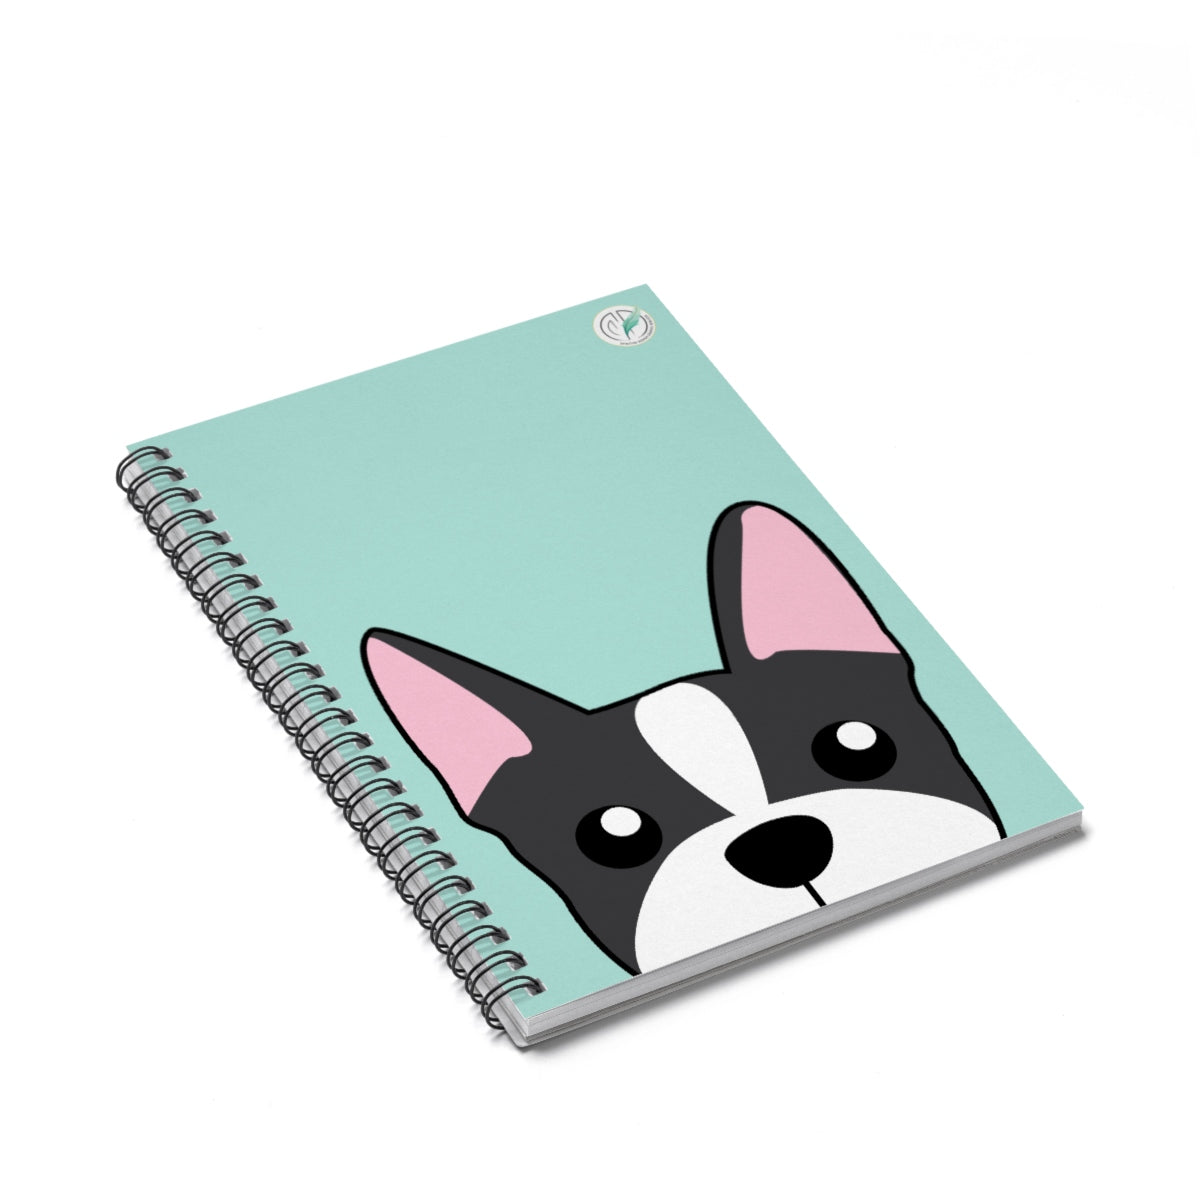 Boston Terrier Paw Prints Spiral Notebook - Ruled Line